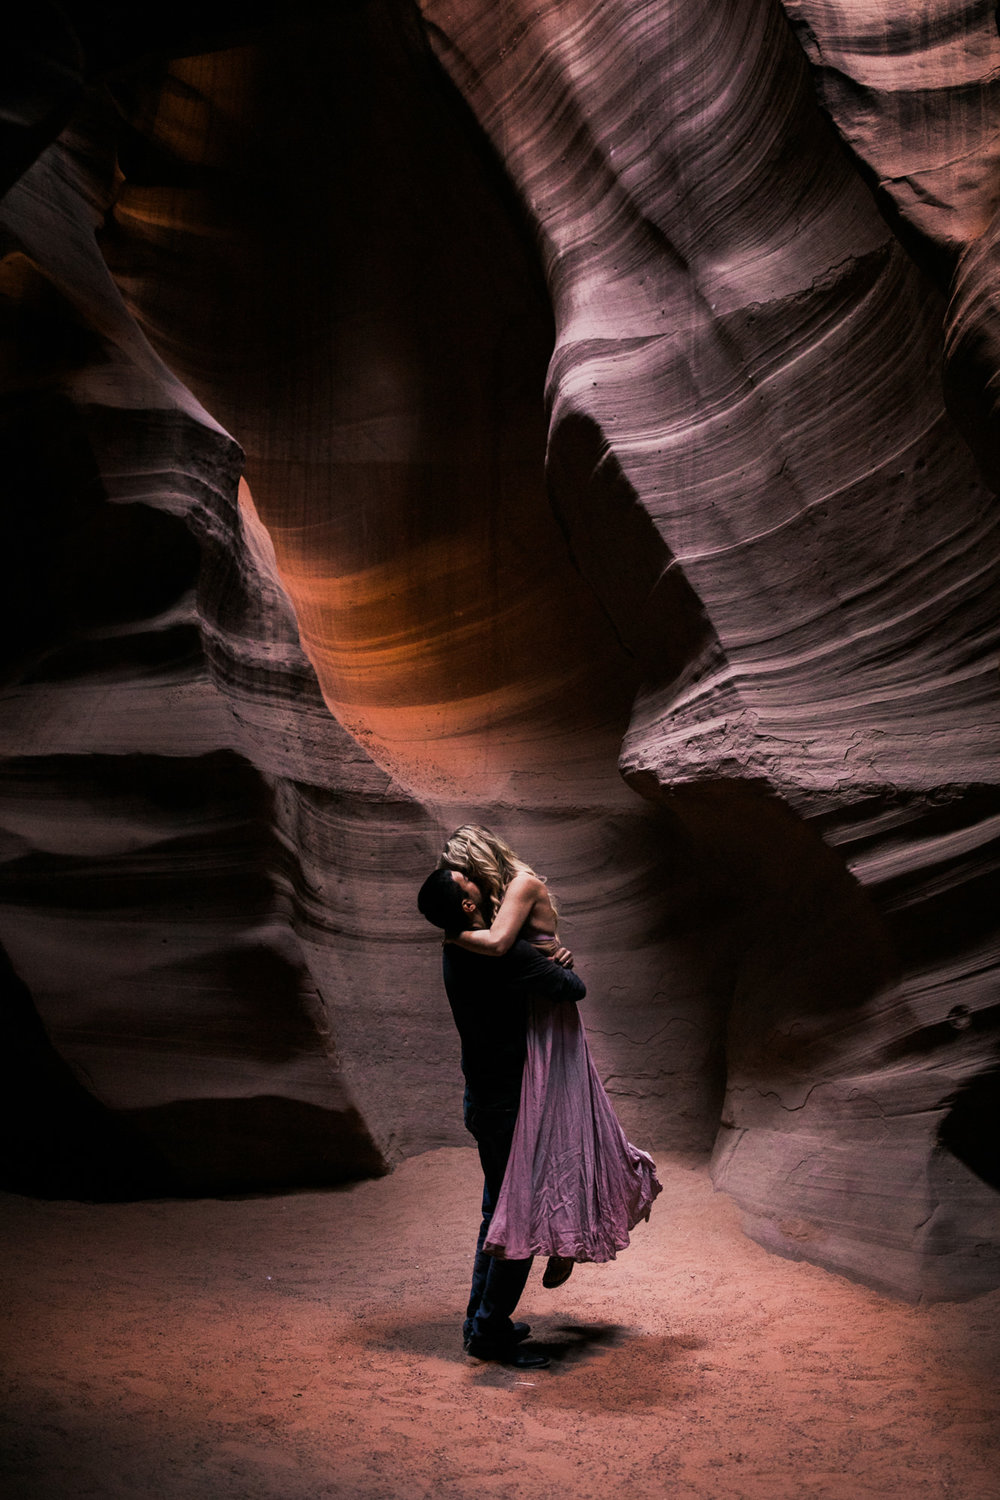 antelope canyon adventure elopement session | destination engagement photo inspiration | utah adventure elopement photographers | the hearnes adventure photography | www.thehearnes.com